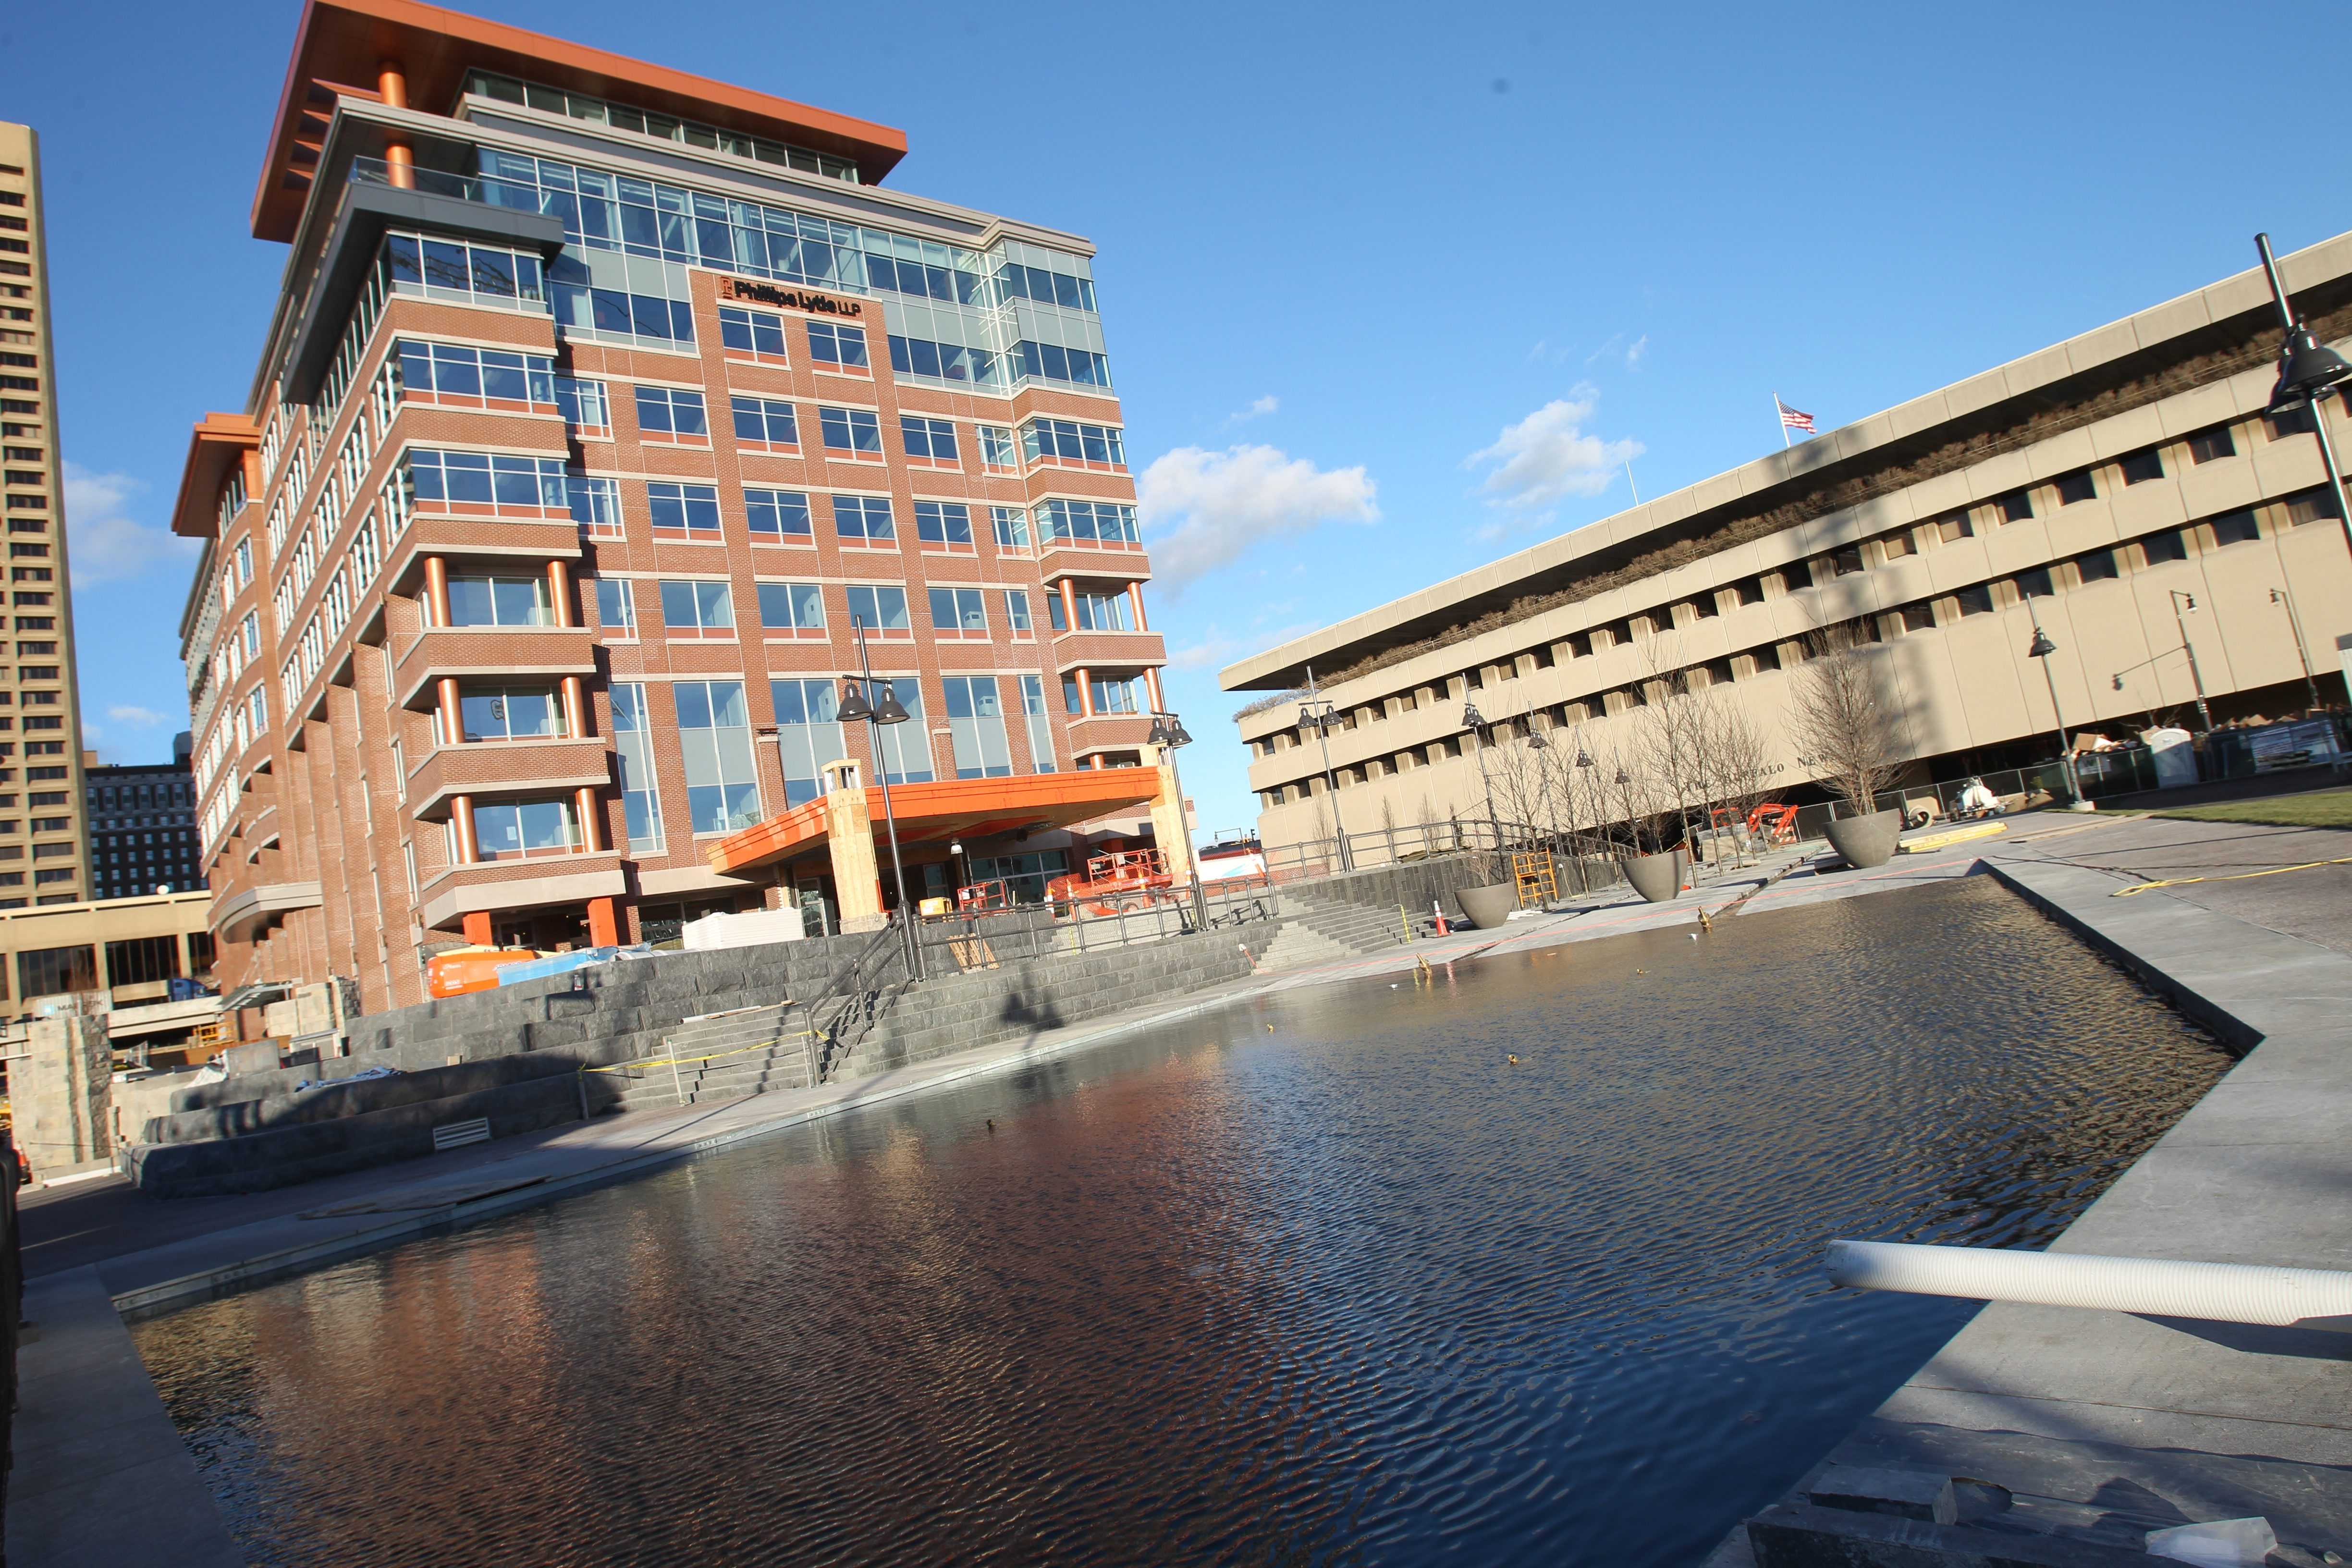 One Canalside will soon have a Pizza Plant restaurant joining a cafe, the Courtyard by Marriott hotel and the offices of Phillips Lytle LLP already in the building in downtown Buffalo. (John Hickey/Buffalo News file photo)